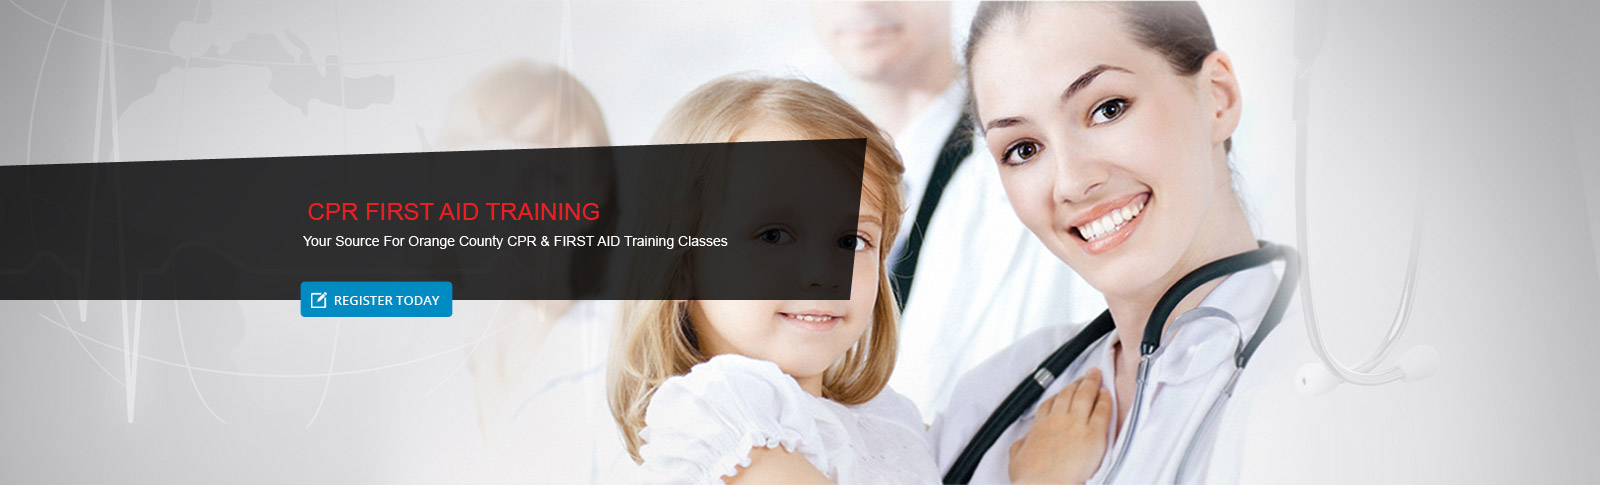 First Aid Certification Orange County Cpr Classes Oc Safety